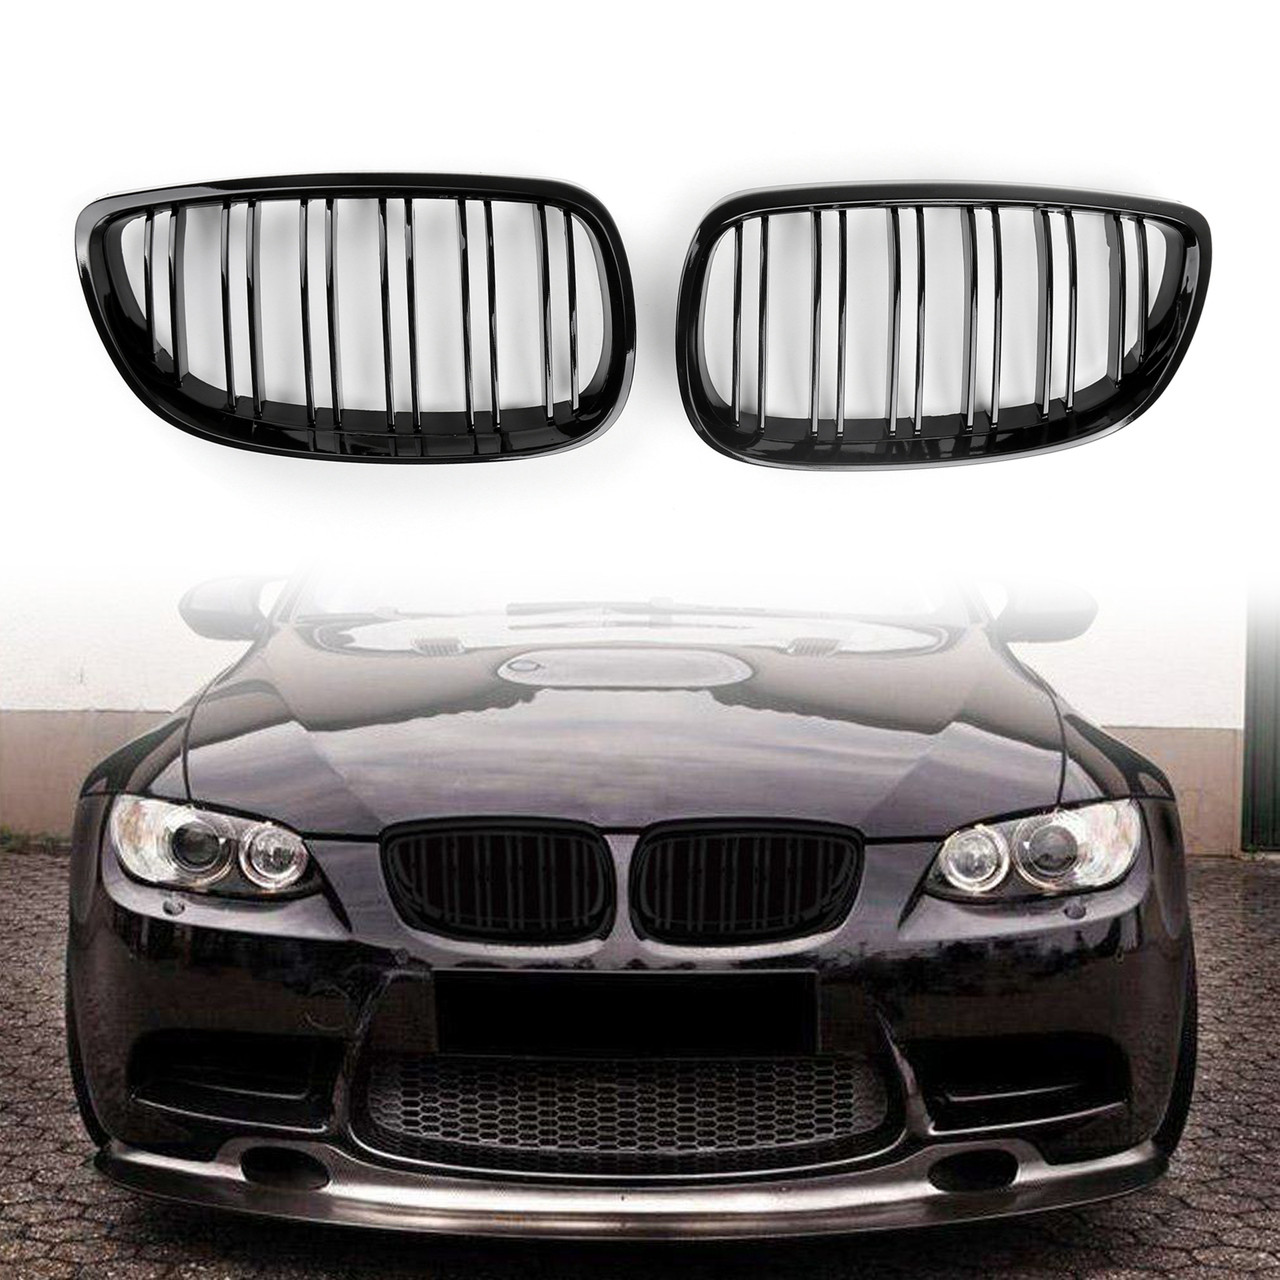 Kidney Grille Grill Double Slots BMW E92 E93 3 Series Coupe 2 Door 2006/07-2013 Gloss Black